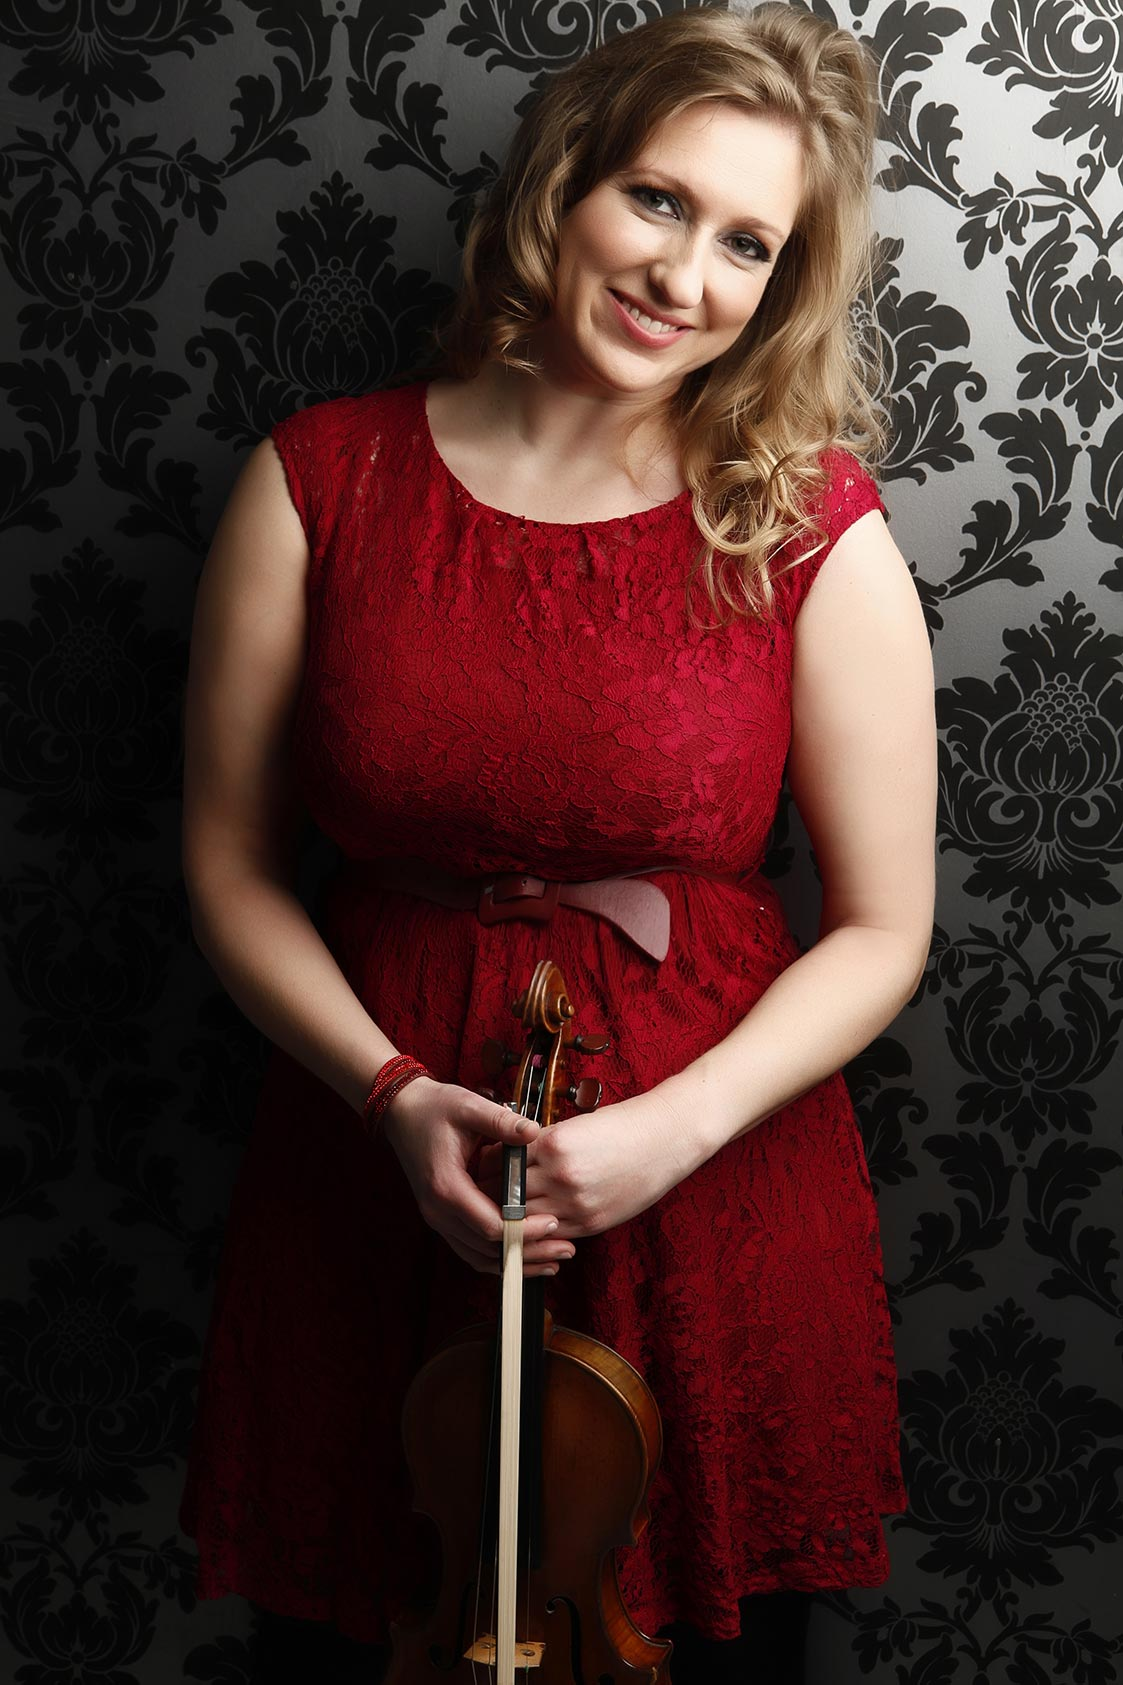 Seonaid Aitken posing with violin in red dress